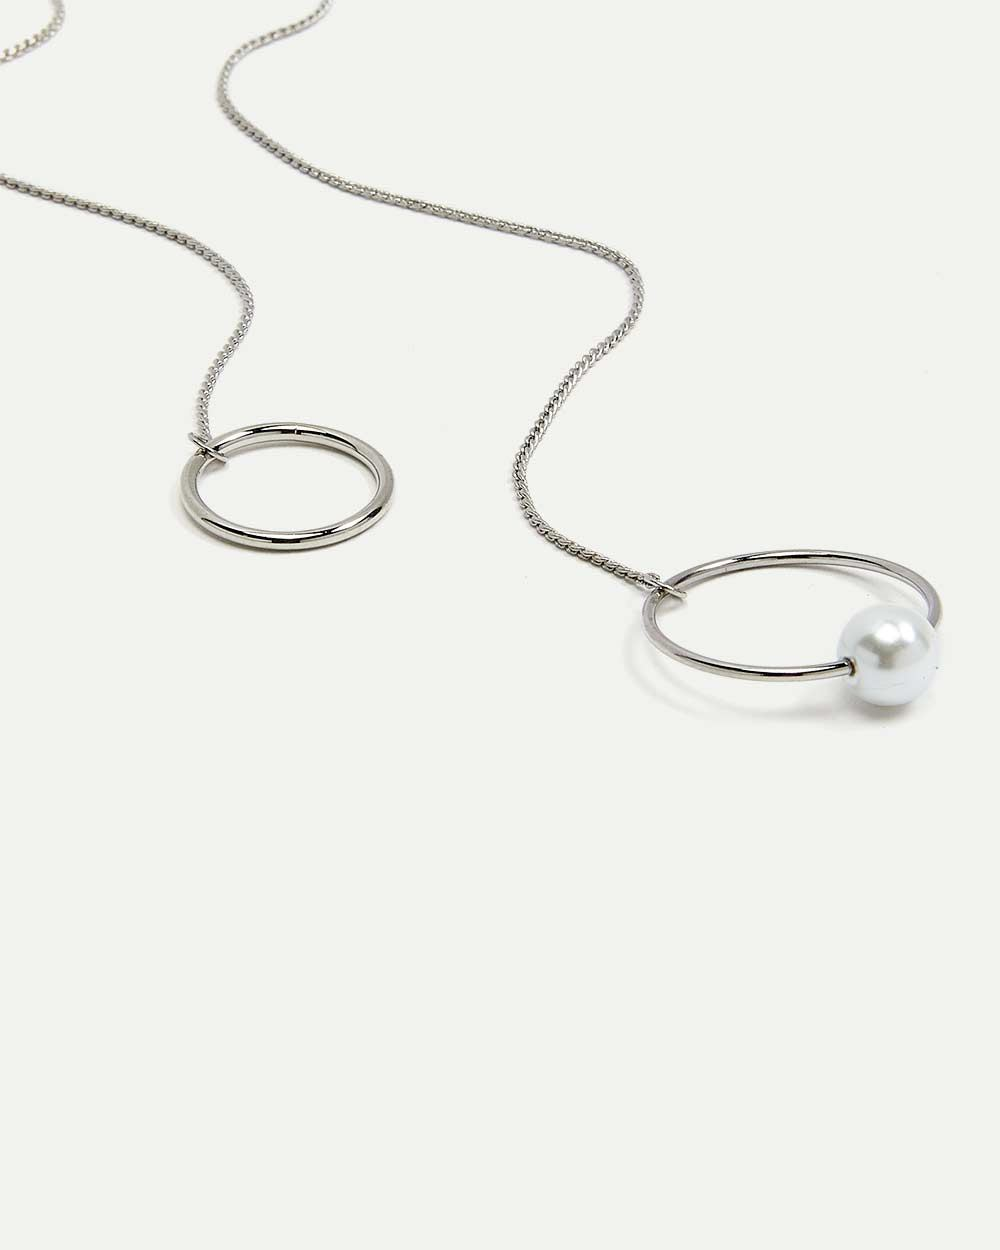 Long Necklace with Rings & Pearl Pendant